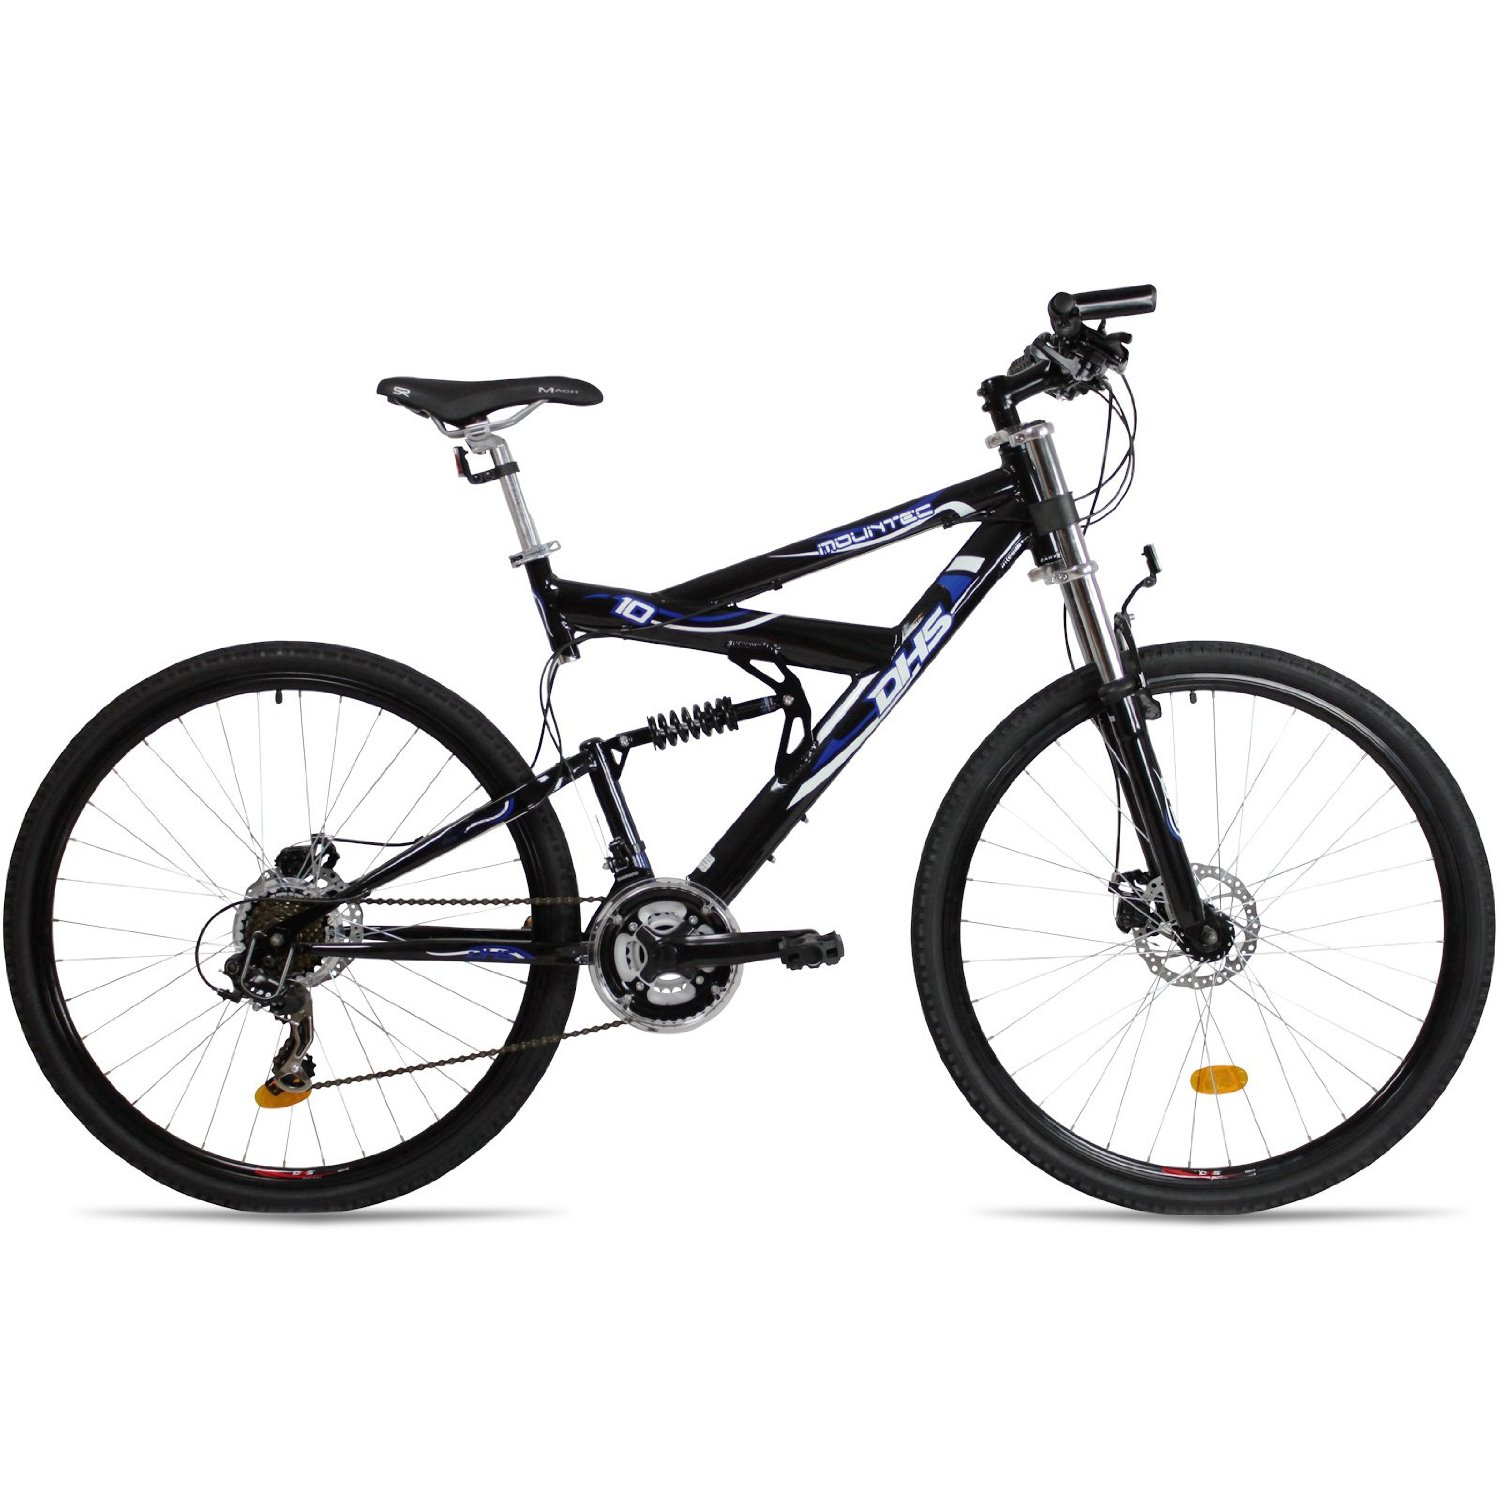 mountainbike mit 28 zoll unter 300 euro. Black Bedroom Furniture Sets. Home Design Ideas